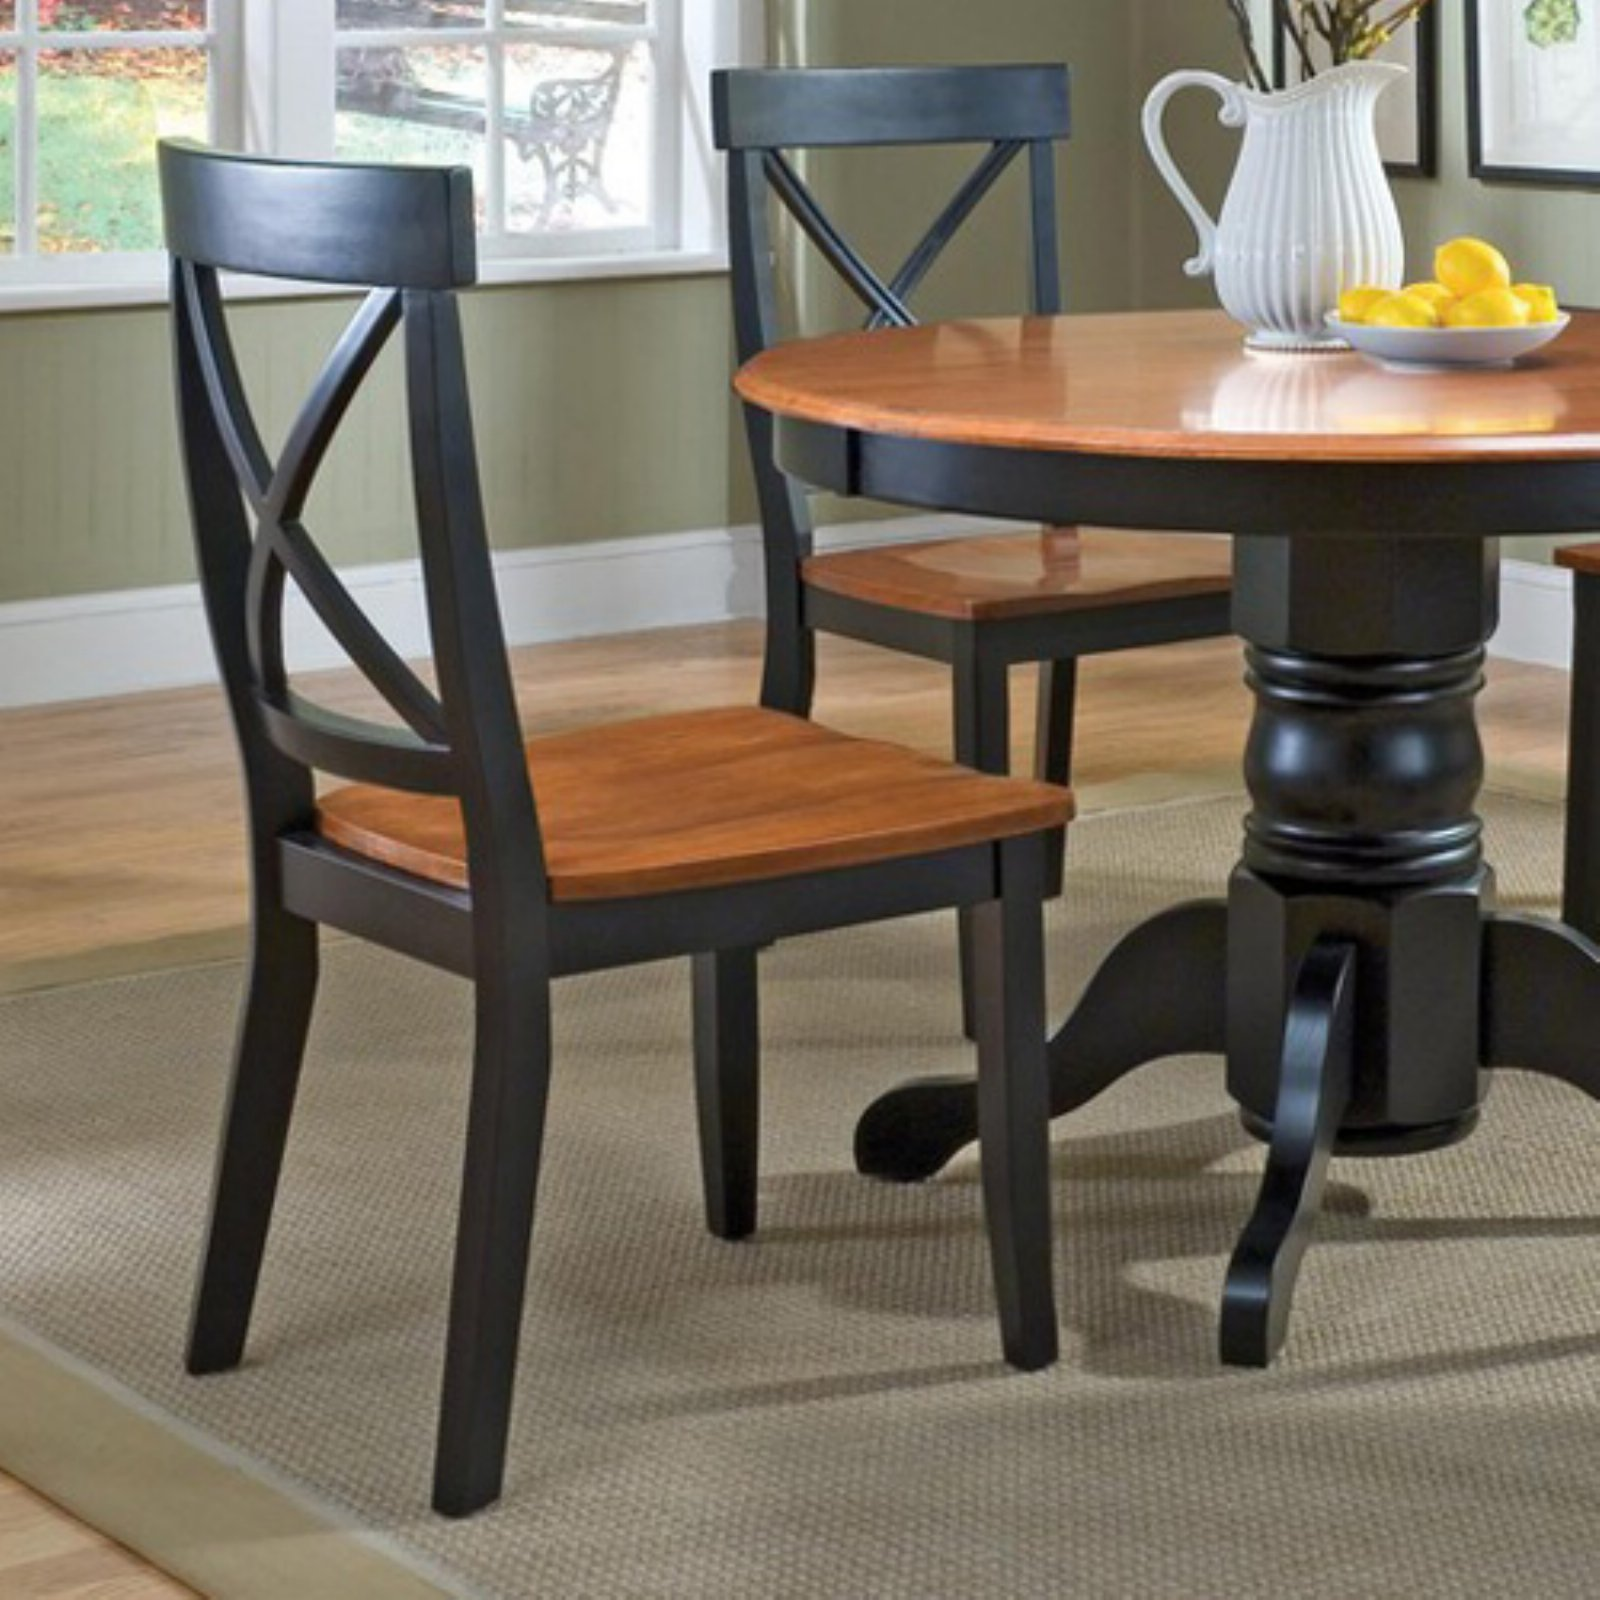 Merveilleux Home Styles Dining Chairs, Black/Cottage Oak, Set Of 2